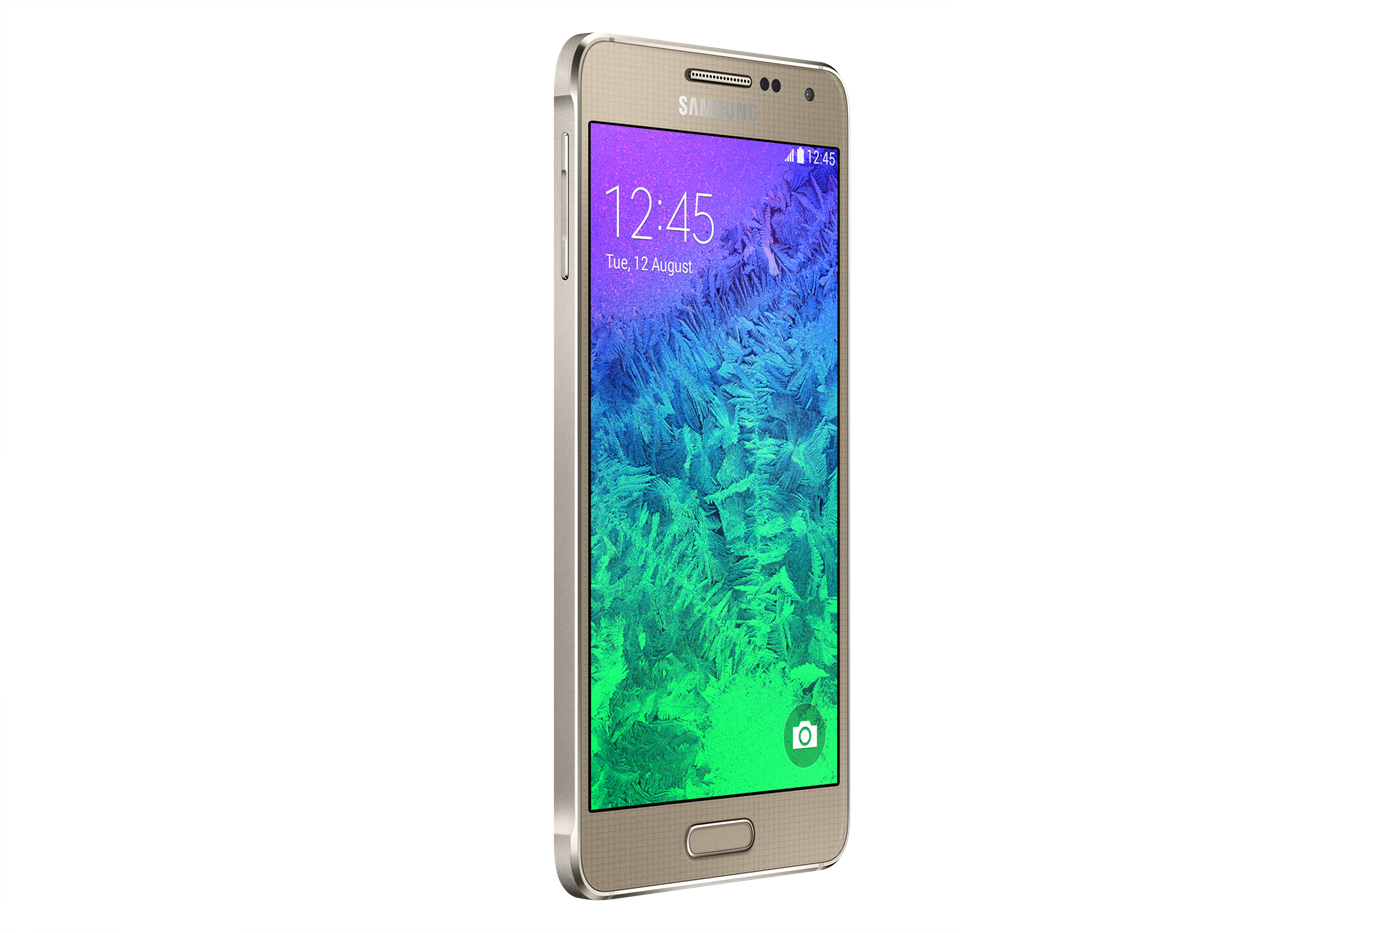 Galaxy Alpha Vs S5 the samsung galaxy alpha is an android smartphone with an